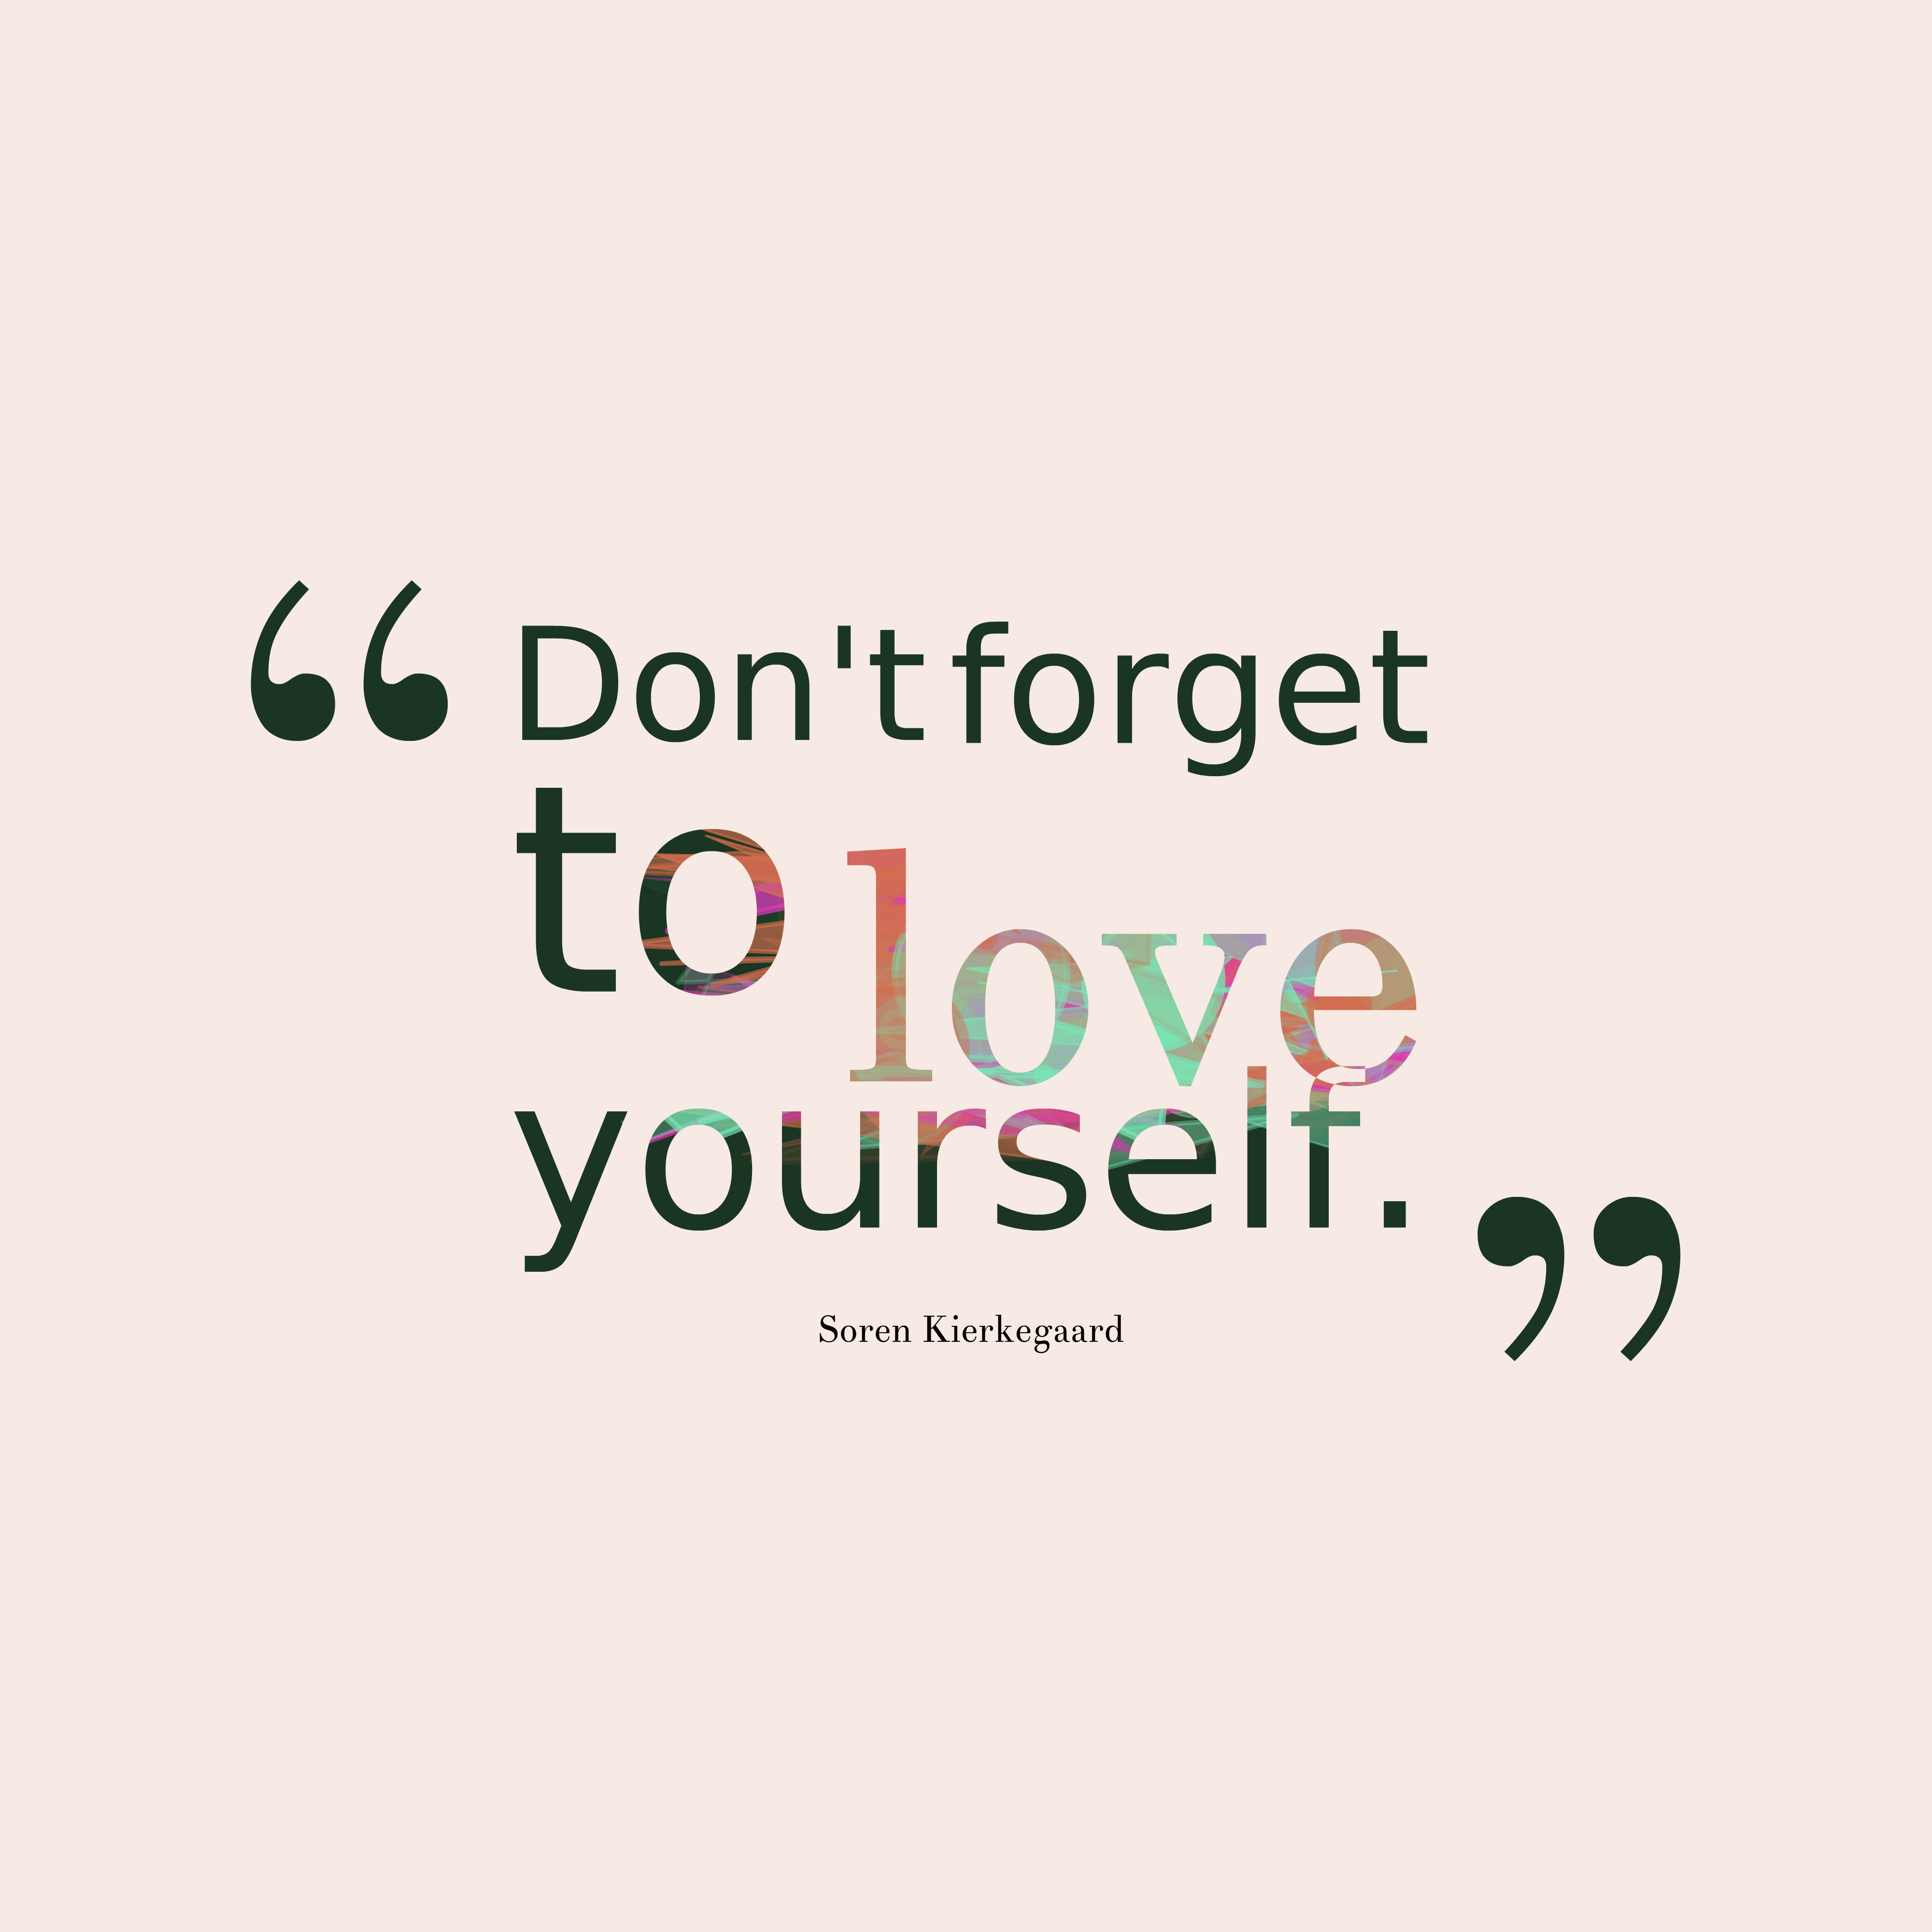 Tumblr Quotes About Loving Yourself 2: Love Yourself Quotes. QuotesGram